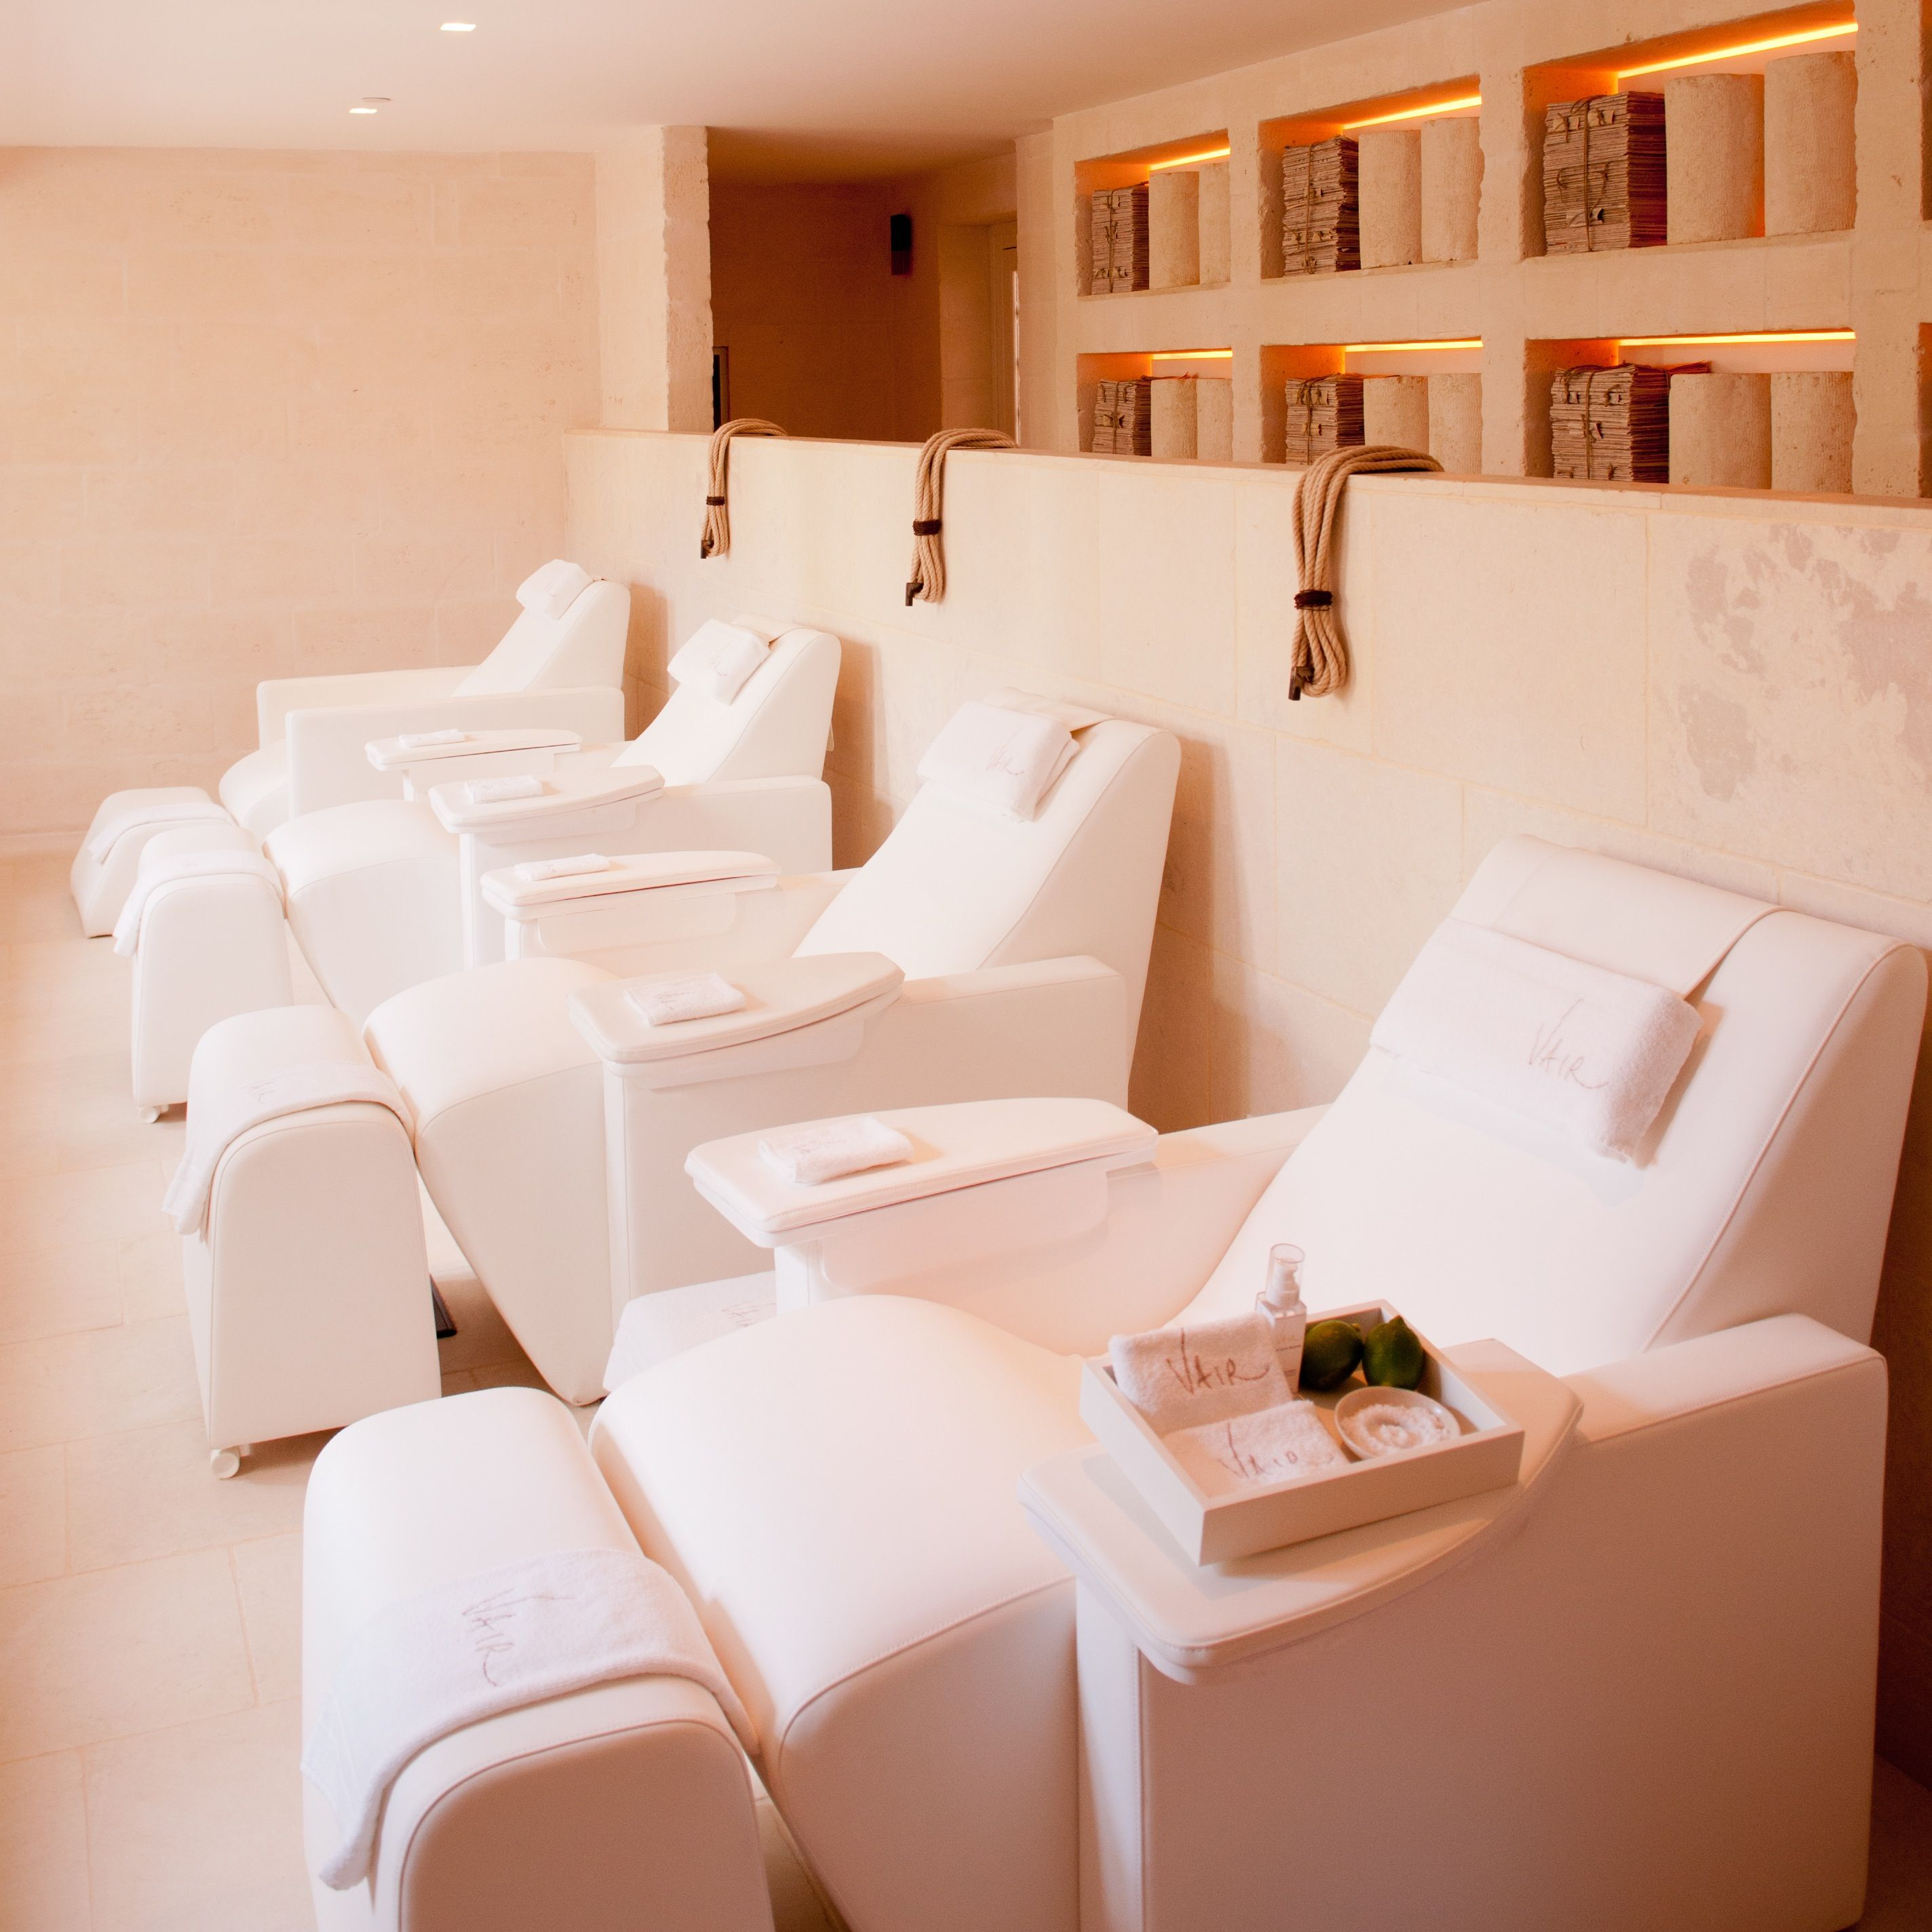 Rest and relax at the Vair Spa, Borgo Egnazia.